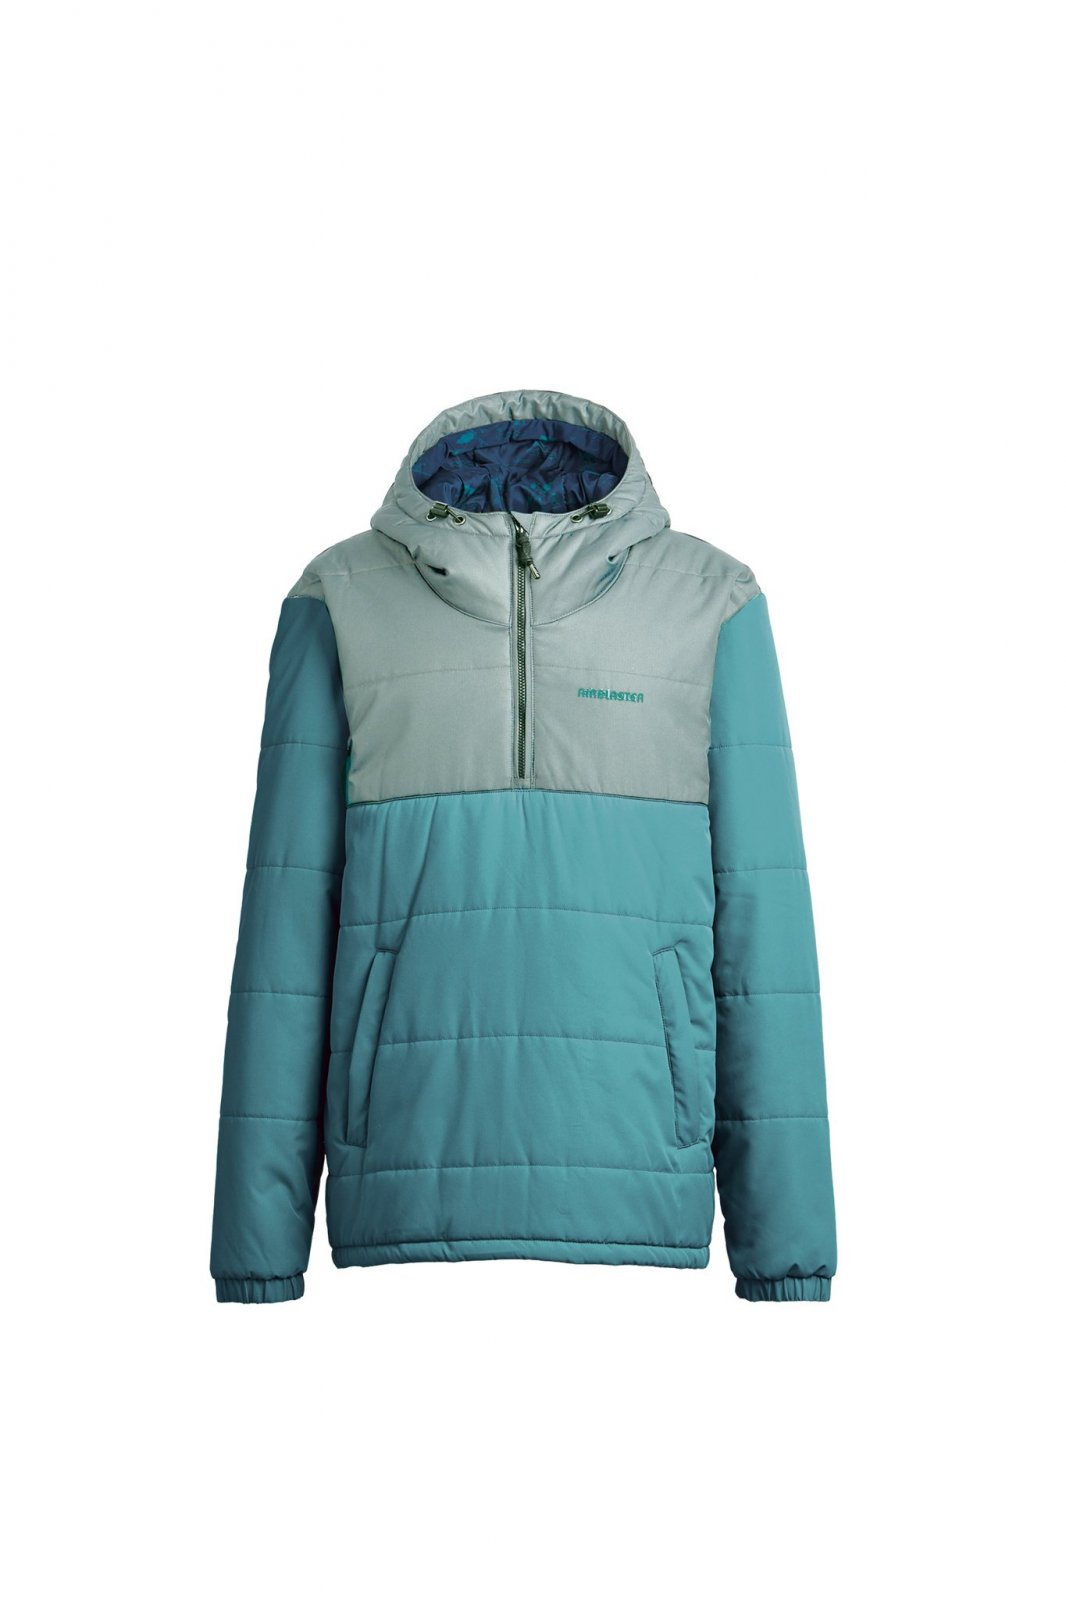 Airblaster Puffin Pullover Snowboard Jacket (Multiple Color Options)